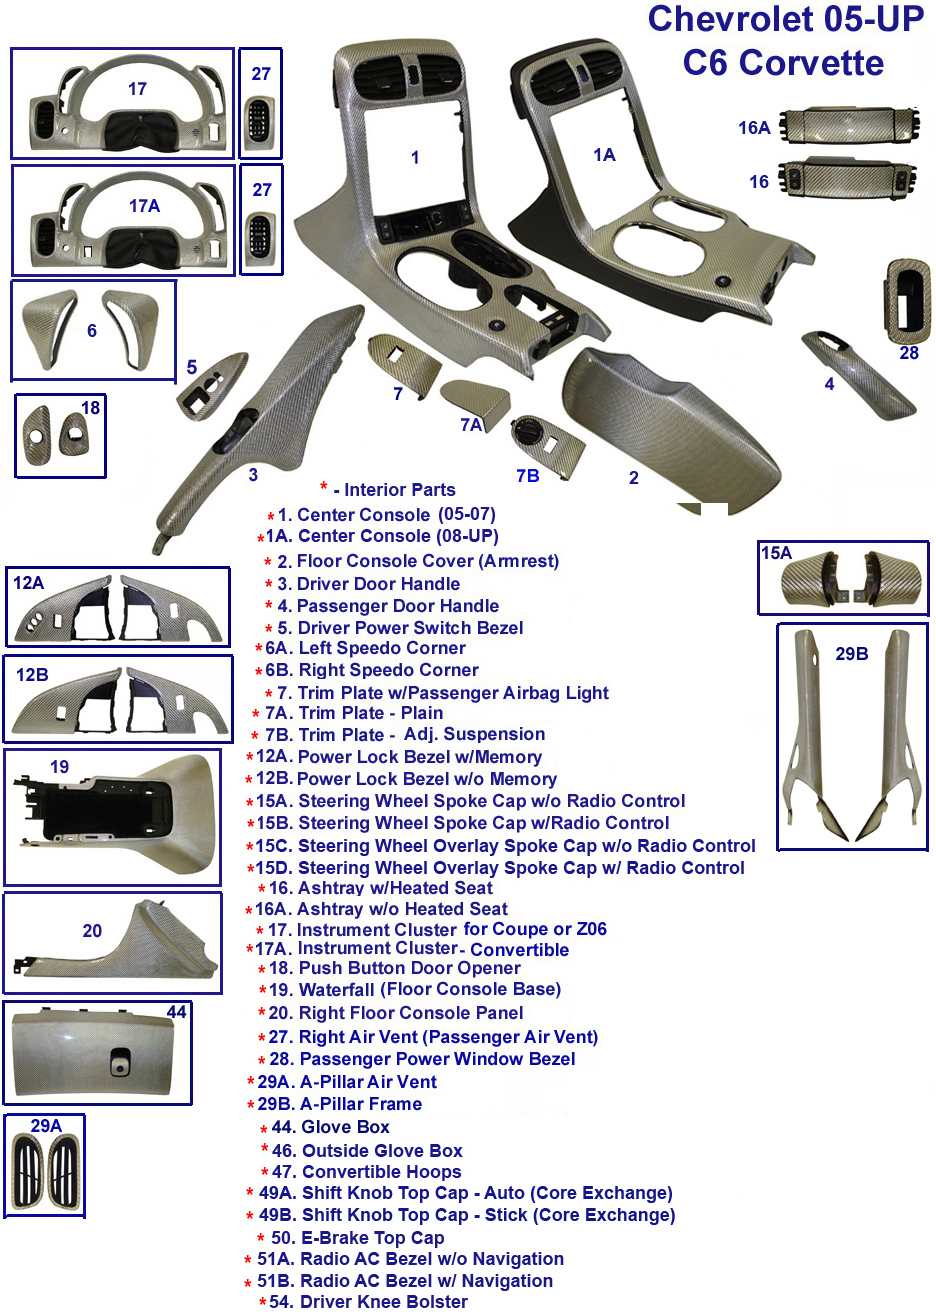 C6 Corvette Performance C4 Interior Wiring Diagram Passenger Power Window Bezel Real Carbon Fiber 2008 And Up